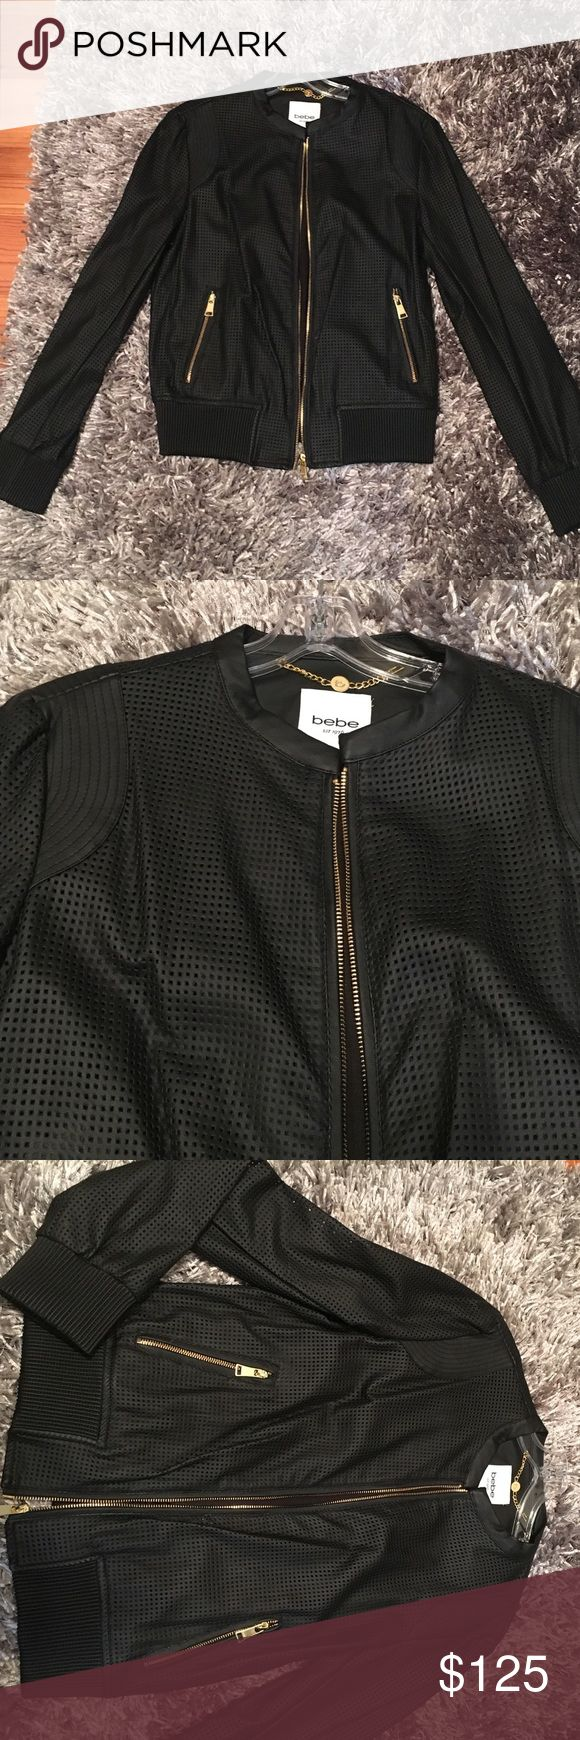 Bebe Black Leather Bomber Jacket Black leather bomber from Bebe, never worn. Leather looks perforated all around and has gold zippers bebe Jackets & Coats Utility Jackets